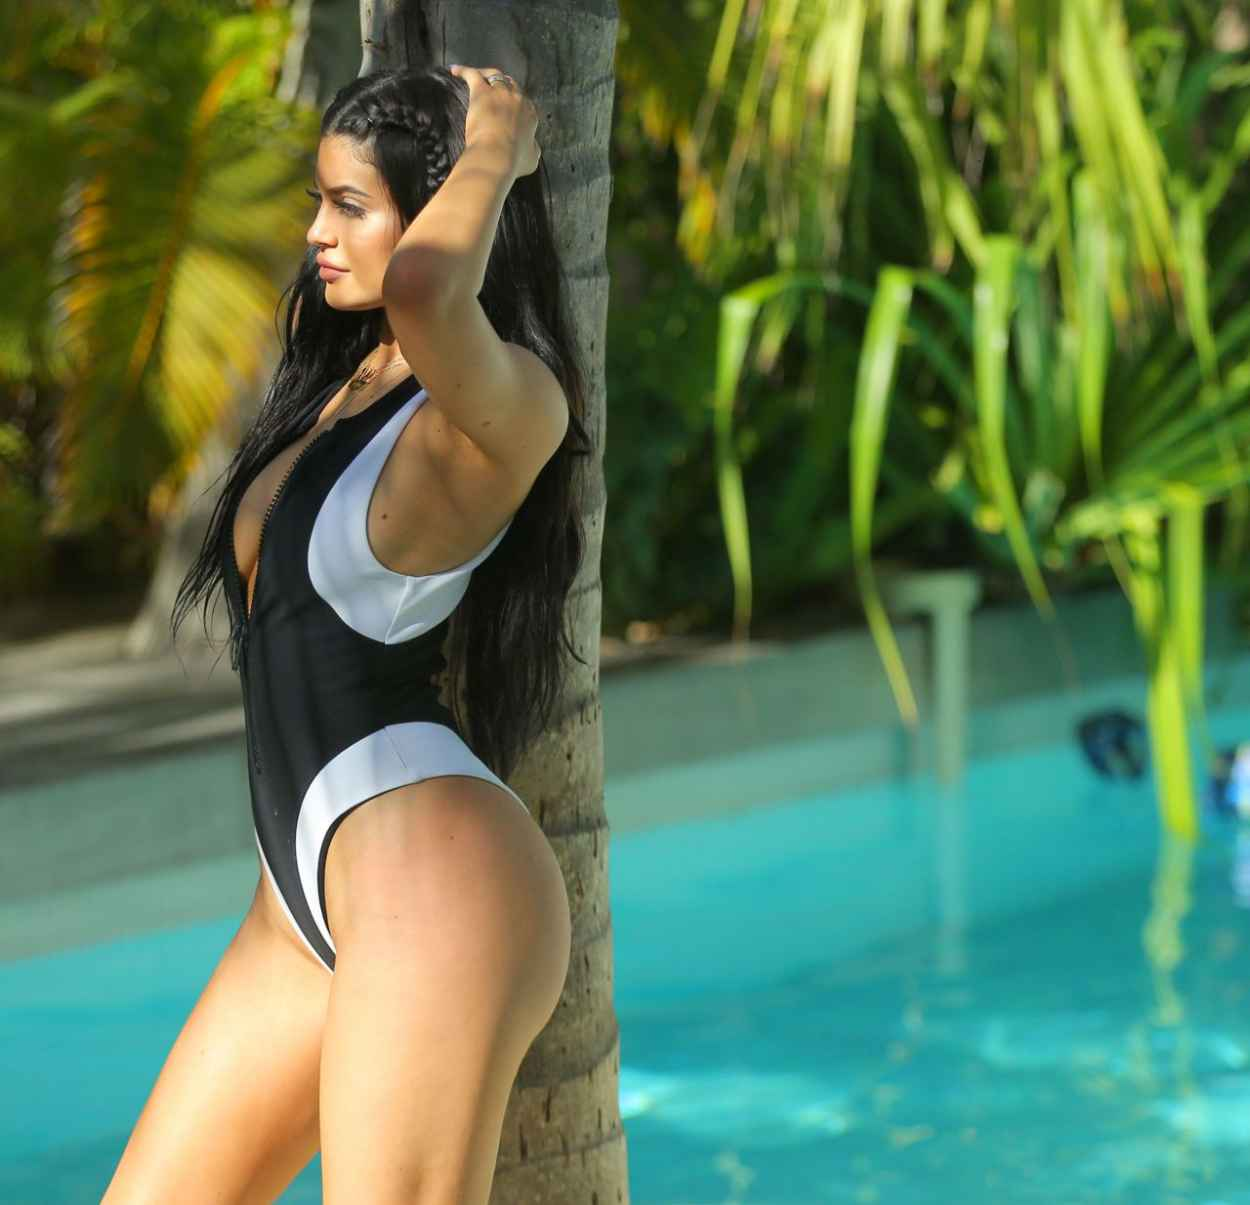 Kylie Jenner Swimsuit Photoshoot in St. Barts - August 2015-5